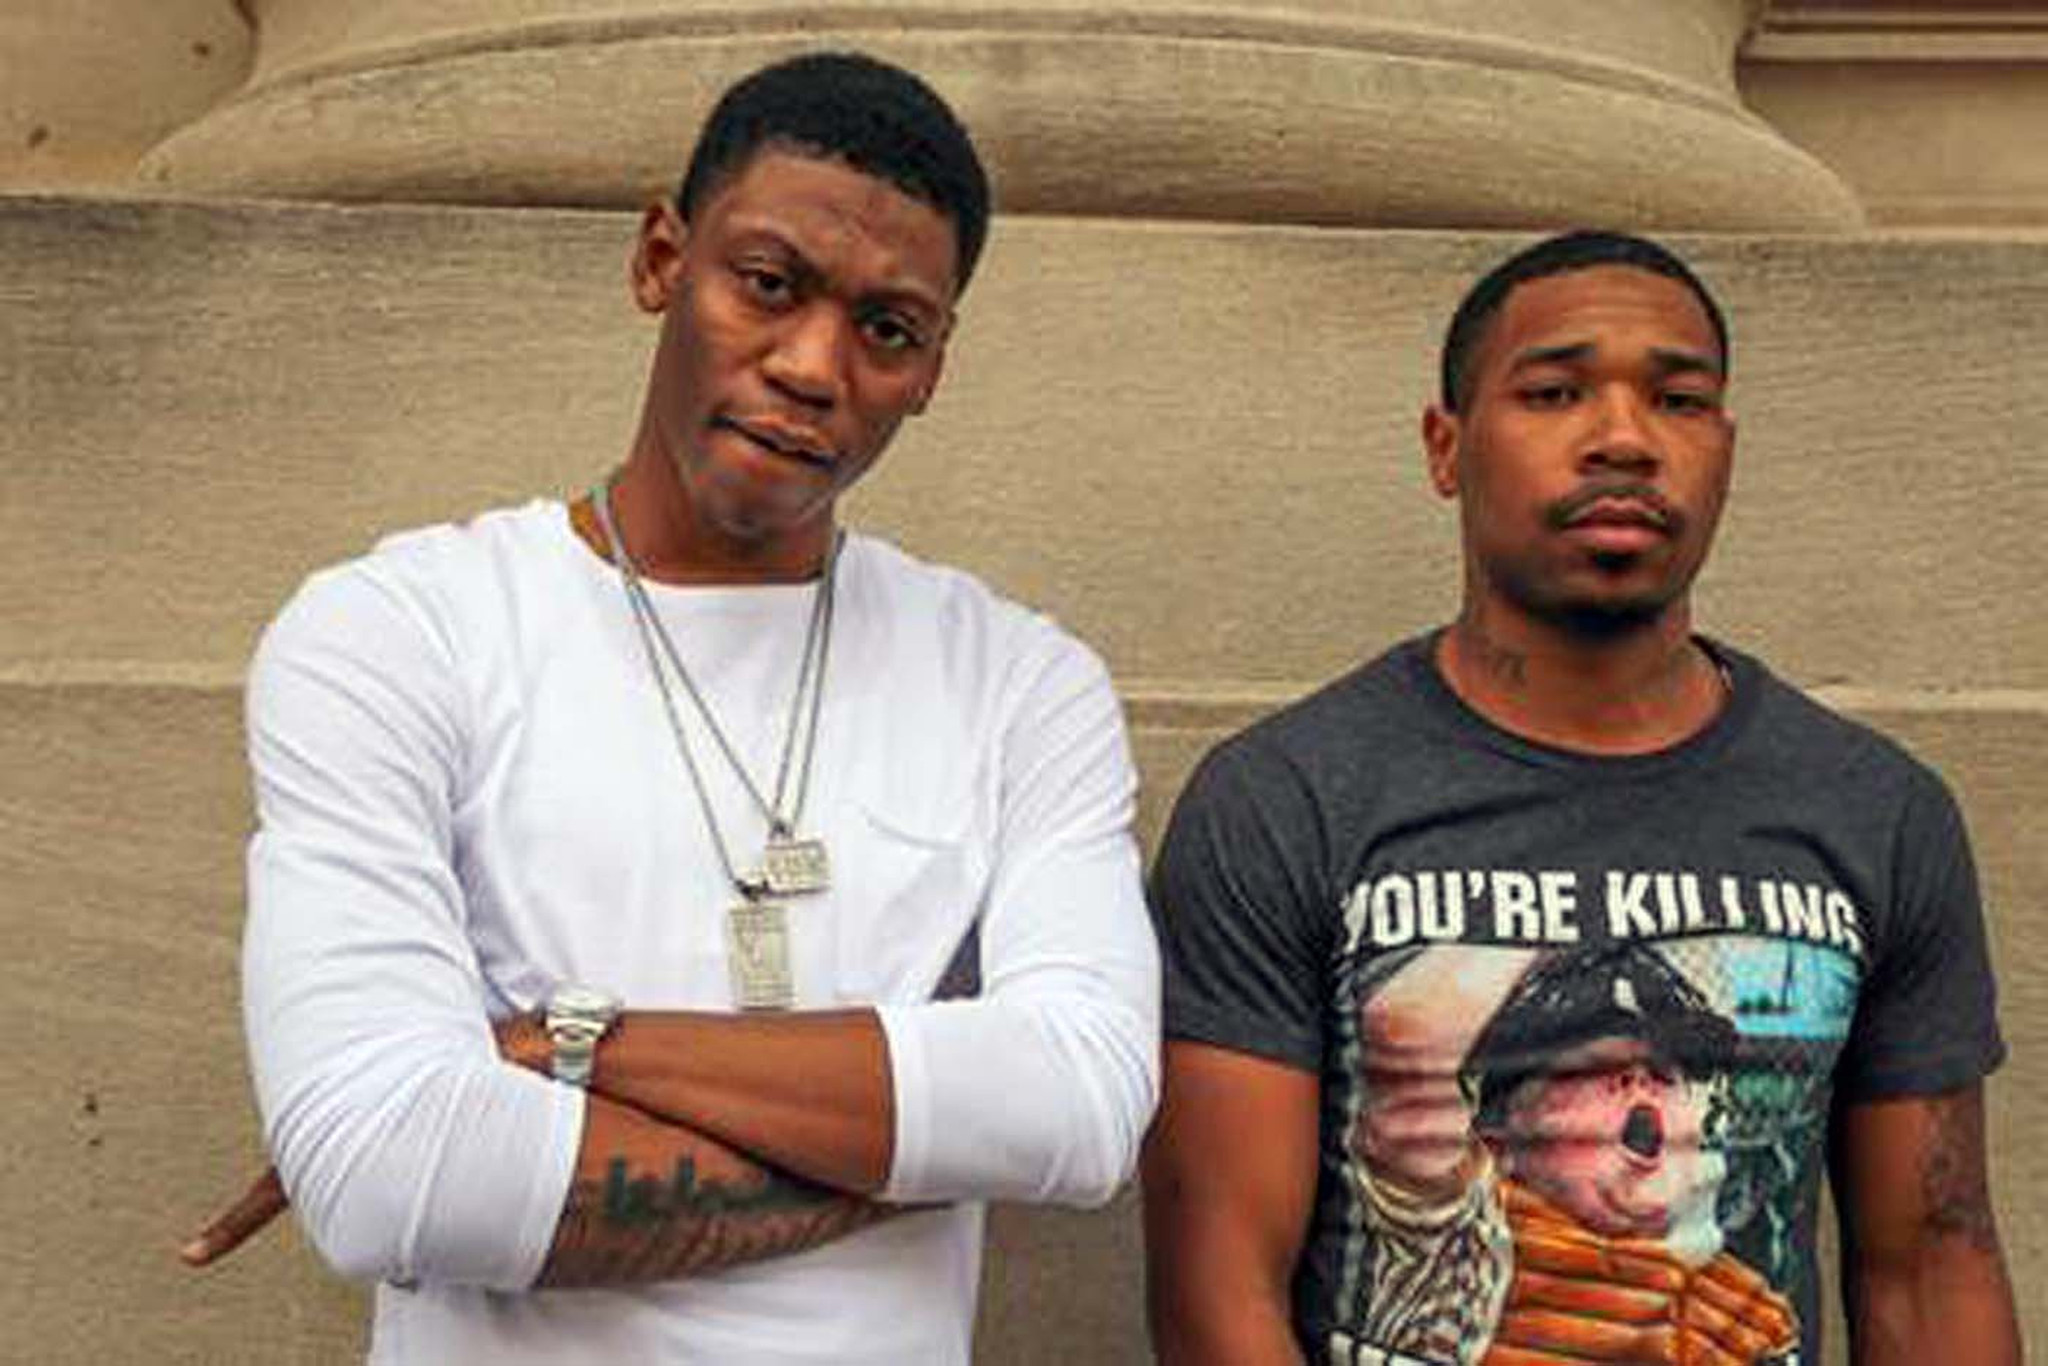 Death of rising rap star Lor Scoota was one of a string of killings,  shootings across Baltimore that police say are connected - Baltimore Sun